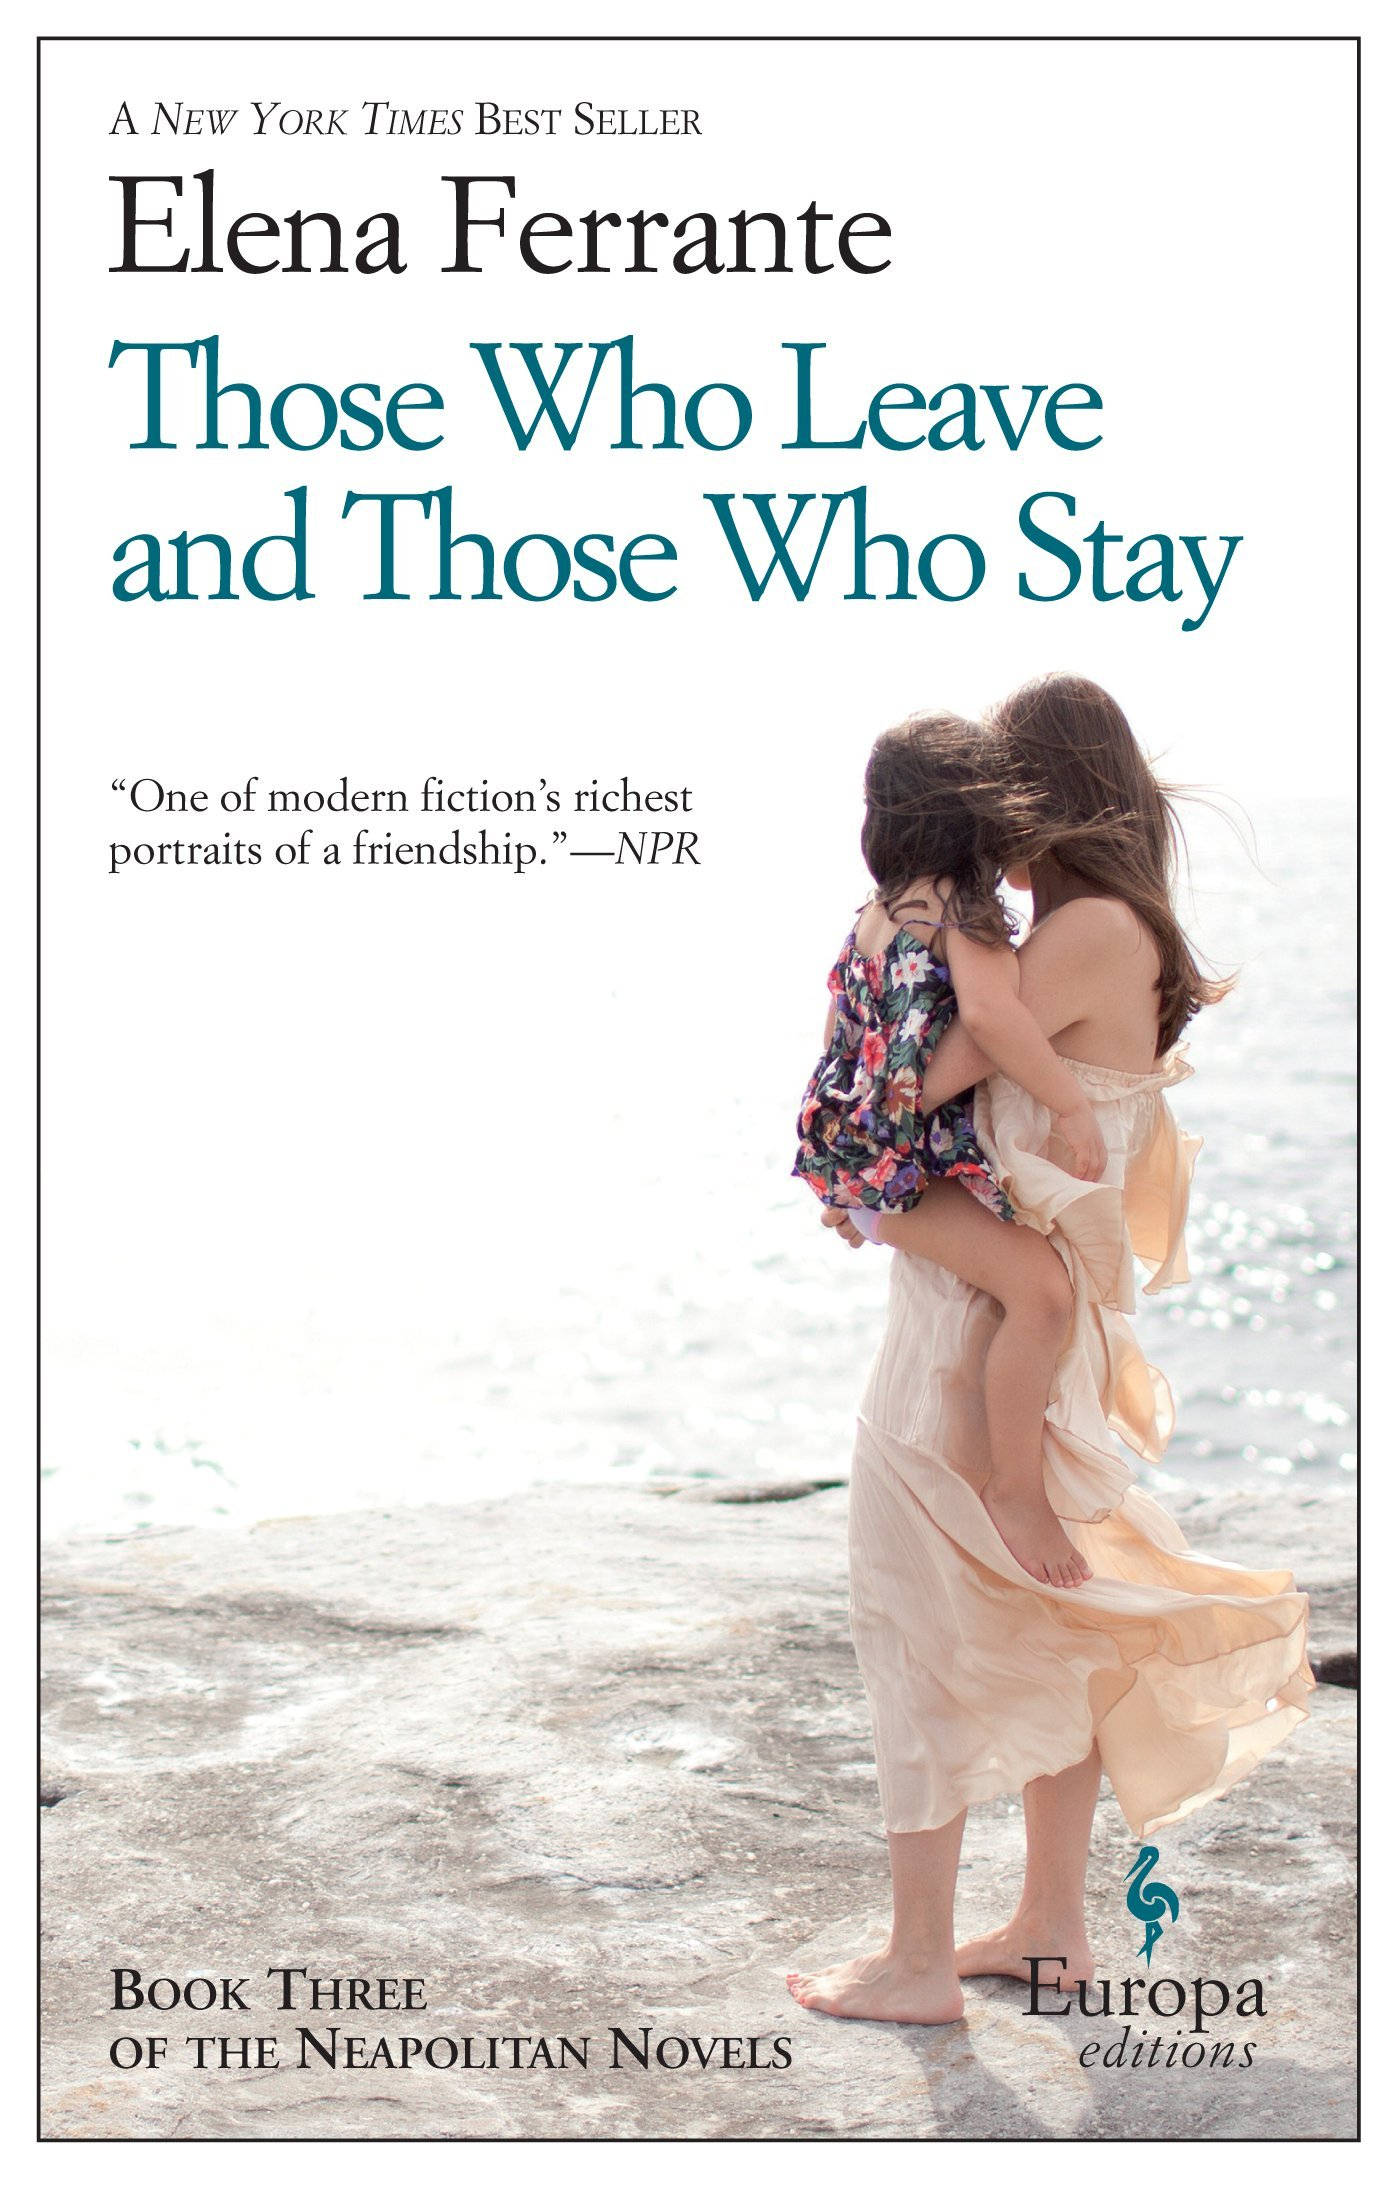 Those Who Leave And Those Who Stay: Neapolitan Novels, Book Three: Elena  Ferrante, Ann Goldstein: 9781609452339: Amazon: Books